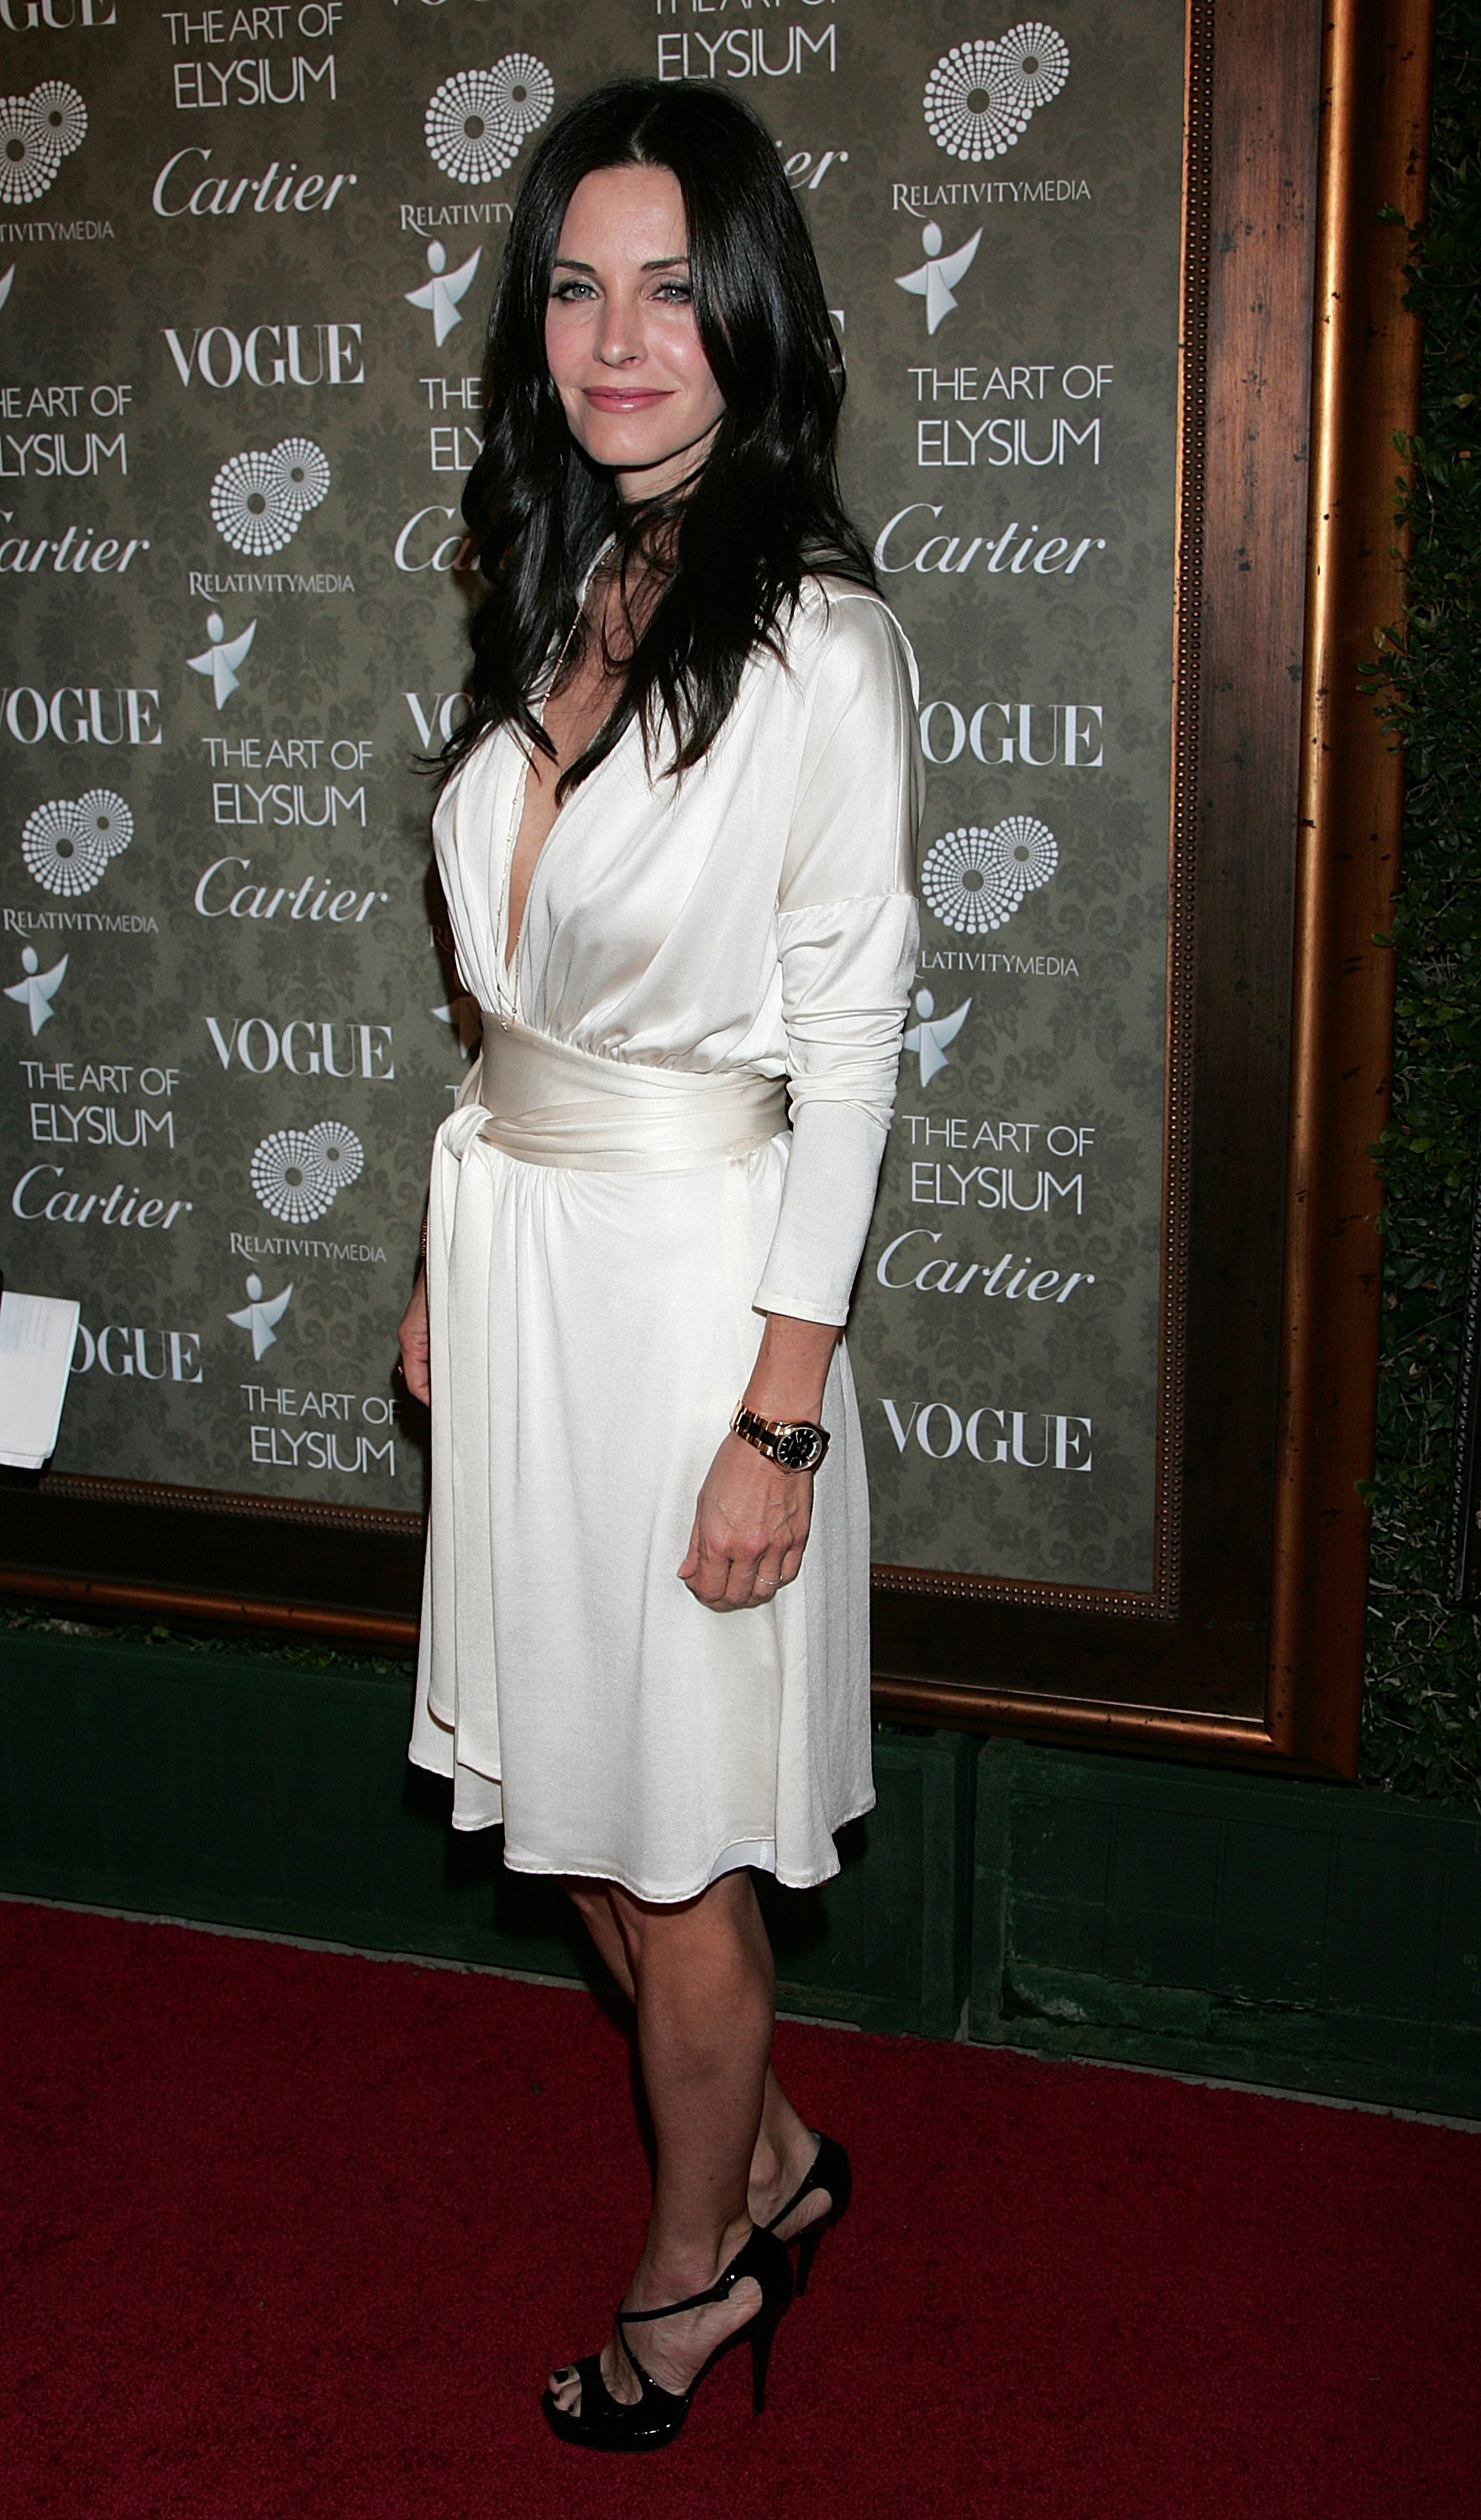 74778_Celebutopia-Courteney_Cox_arrives_at_the_The_Art_Of_Elysium4s_2nd_Annual_Black_Tie_Gala-07_122_200lo.jpg